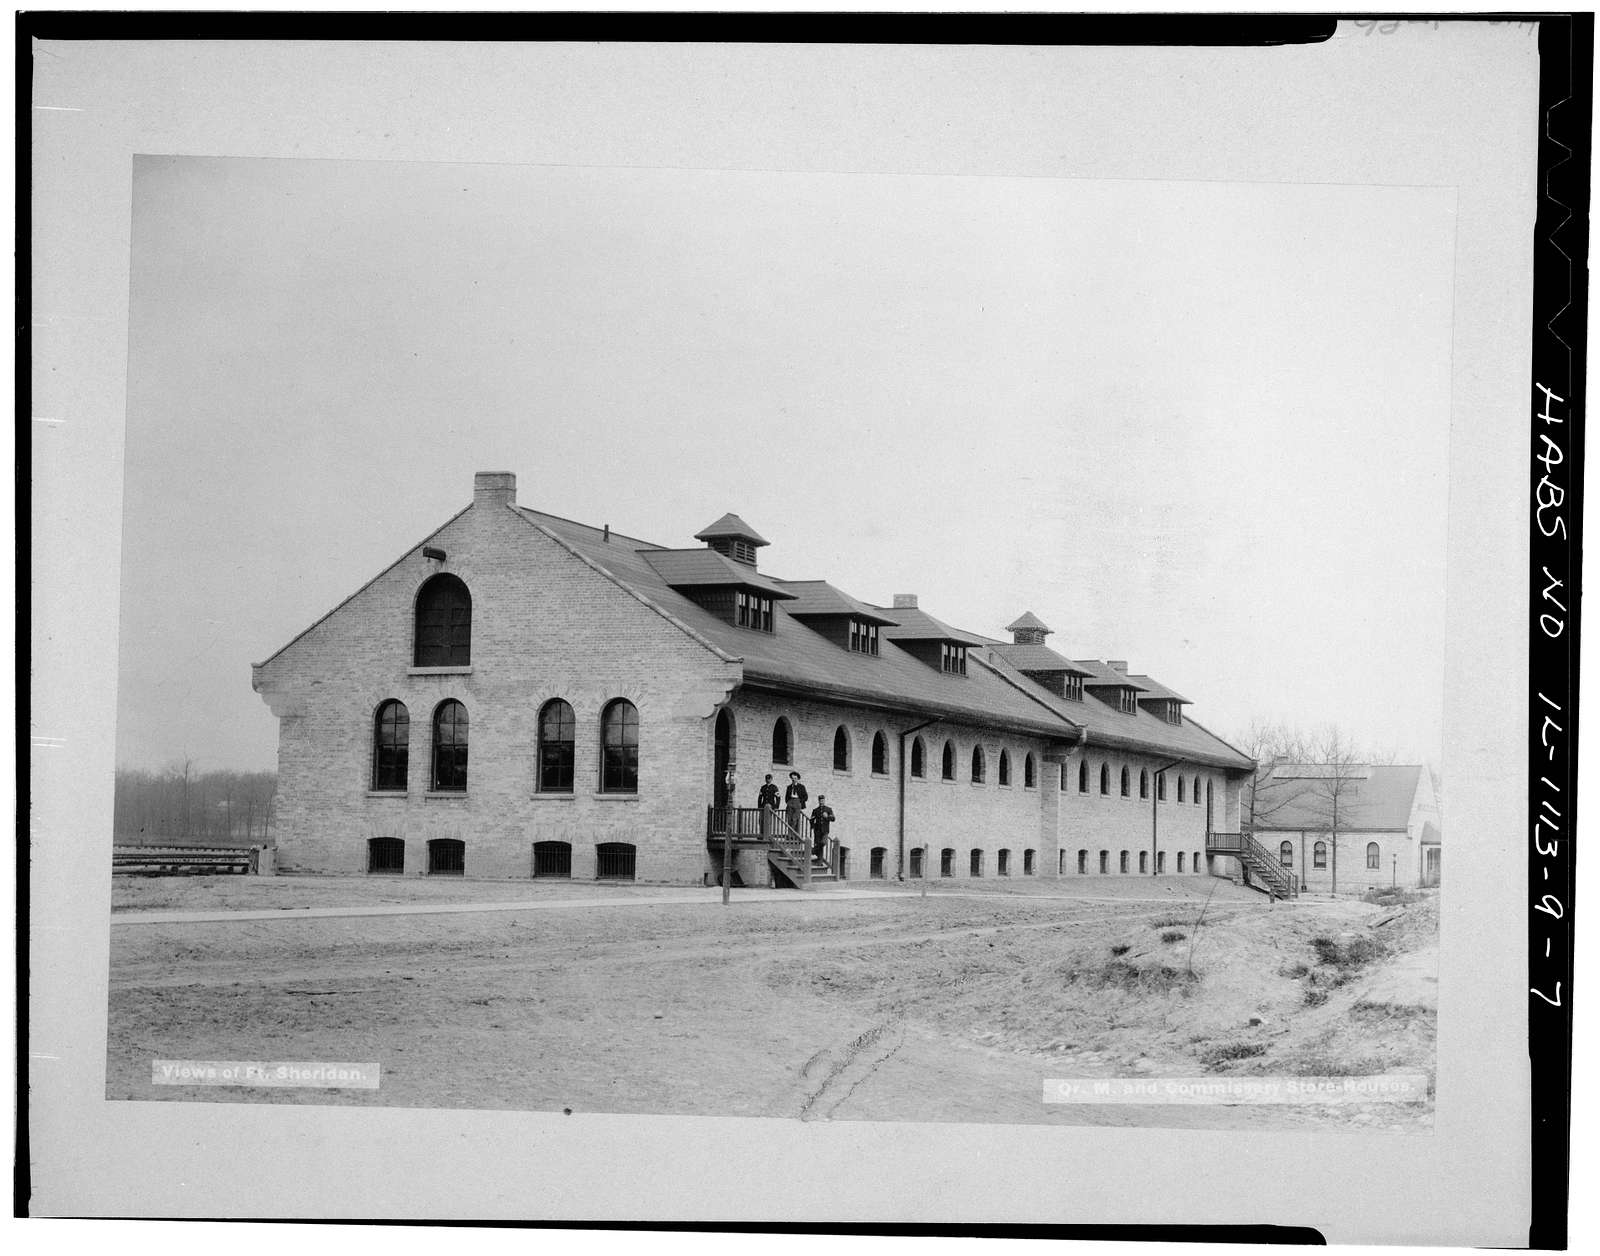 Fort Sheridan, Quartermaster & Commissary Storehouse, Lyster Road, Lake Forest, Lake County, IL